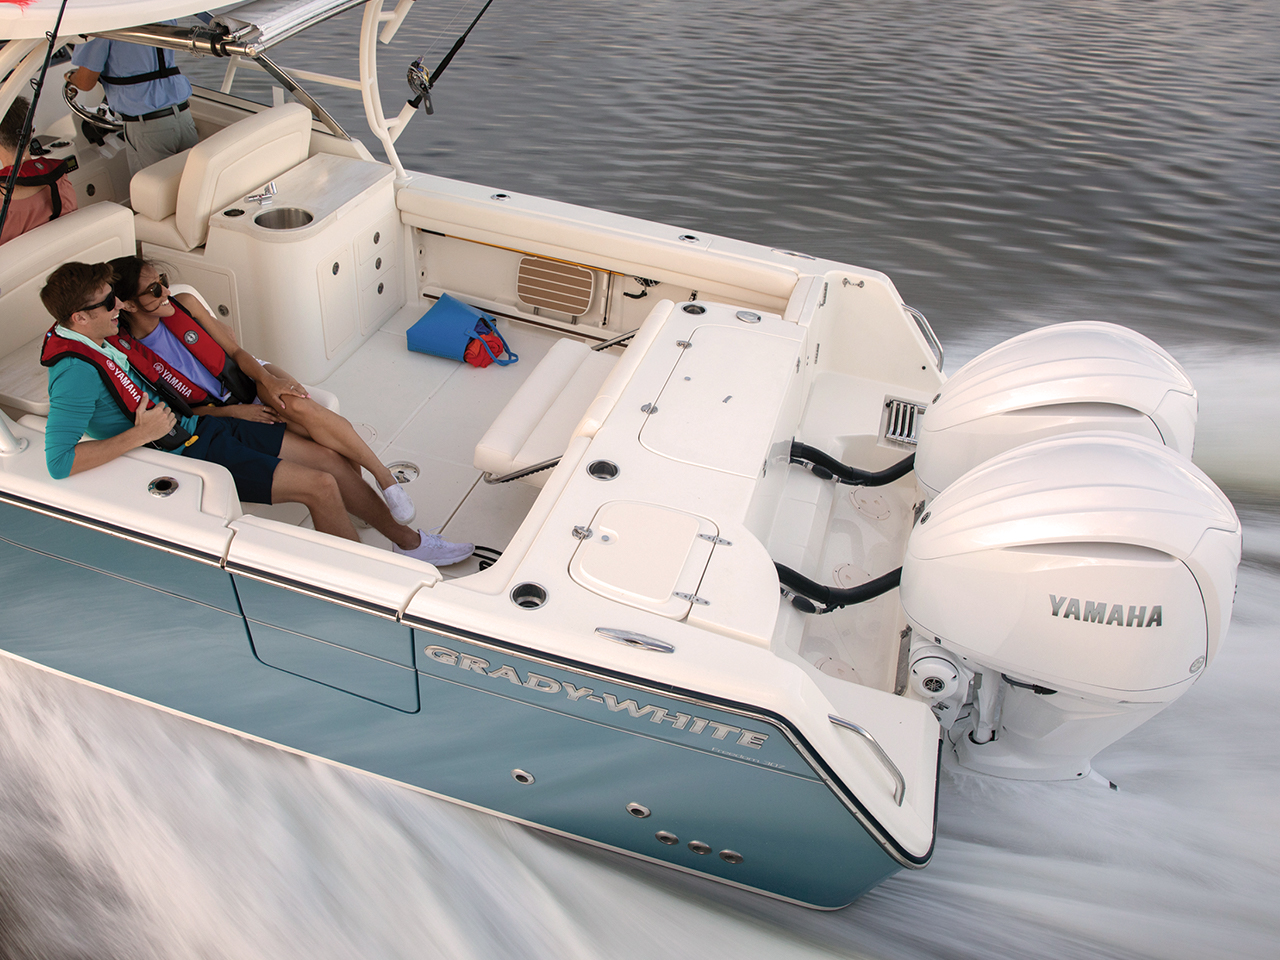 Yamaha V6 equipped to a boat in transit